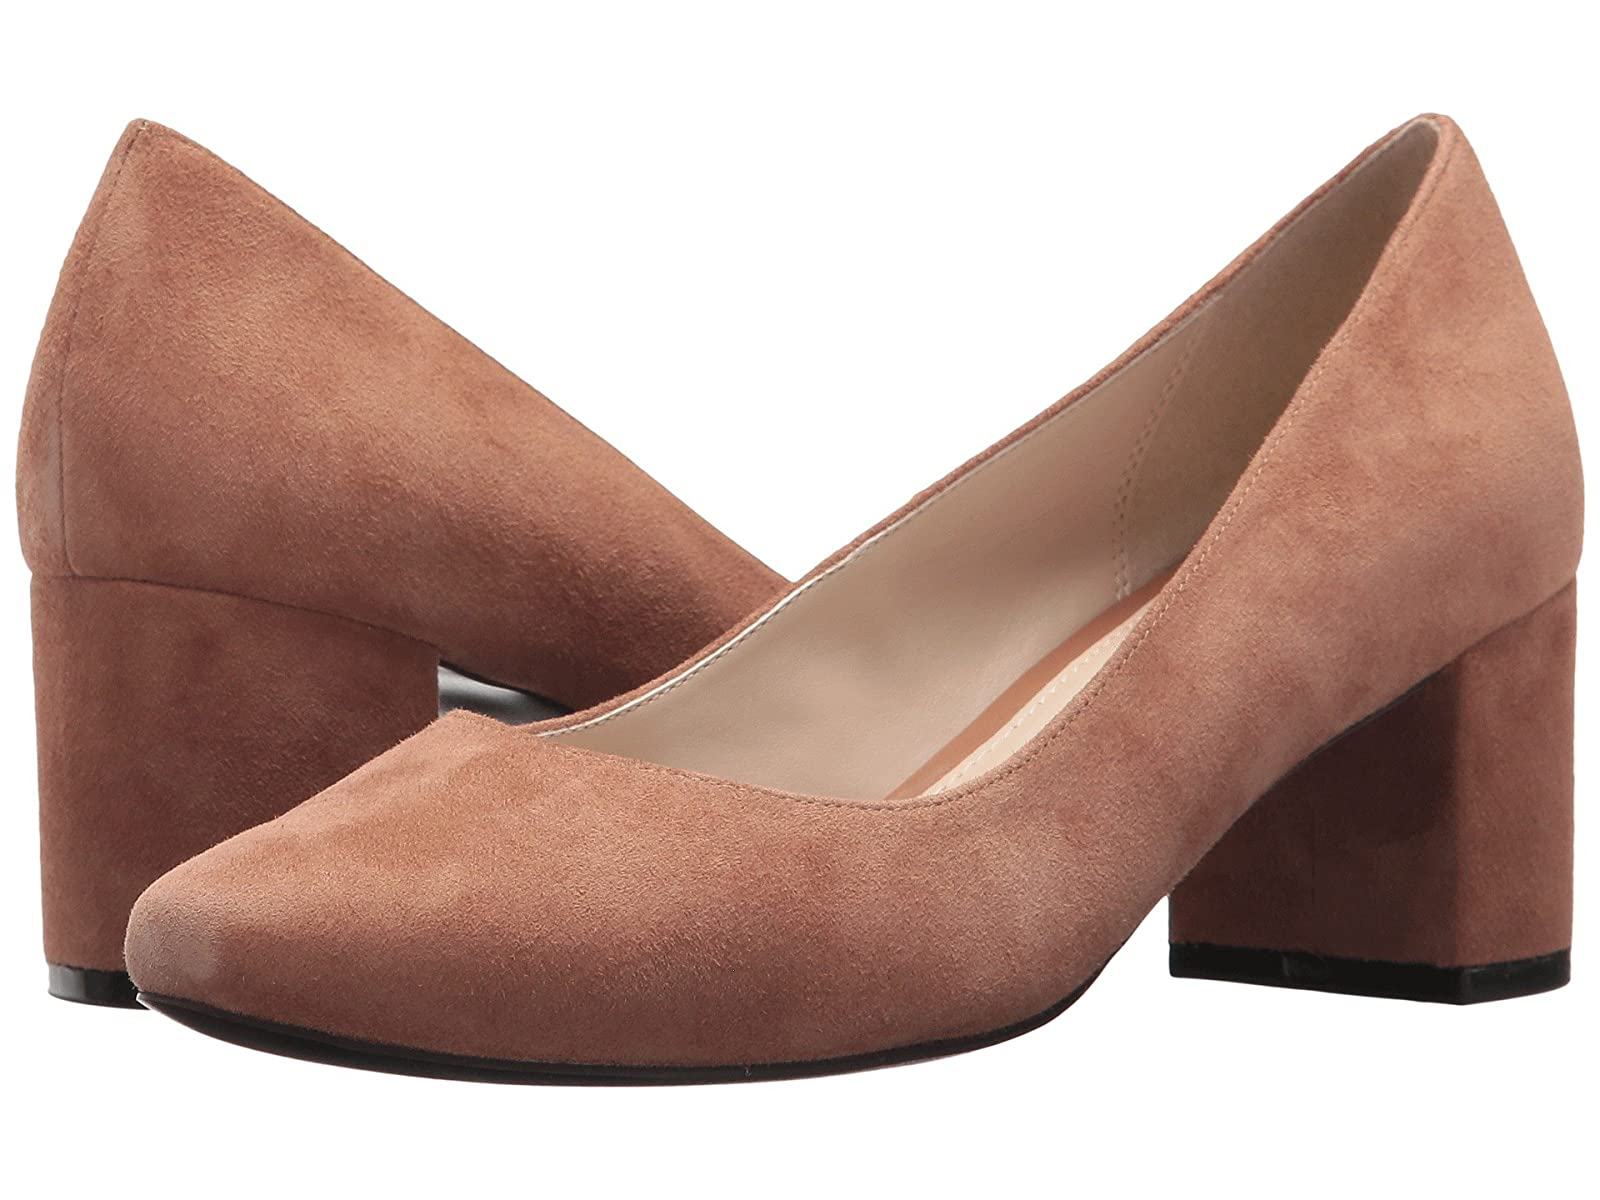 Cole Haan Justine Pump Pump Justine 55mm :Online:Men/Women b1c7e6